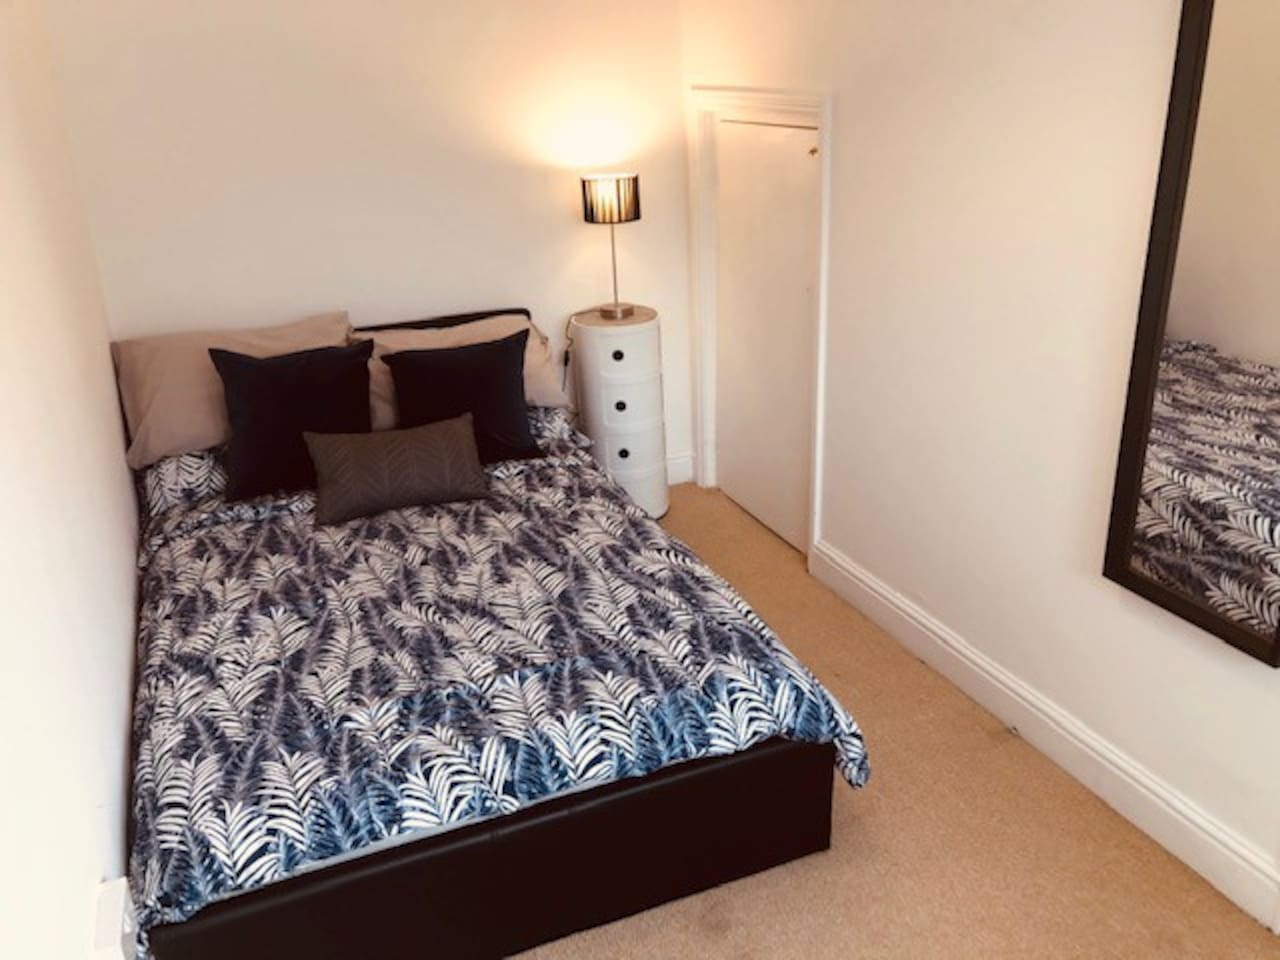 Bright clean room with fresh bedding